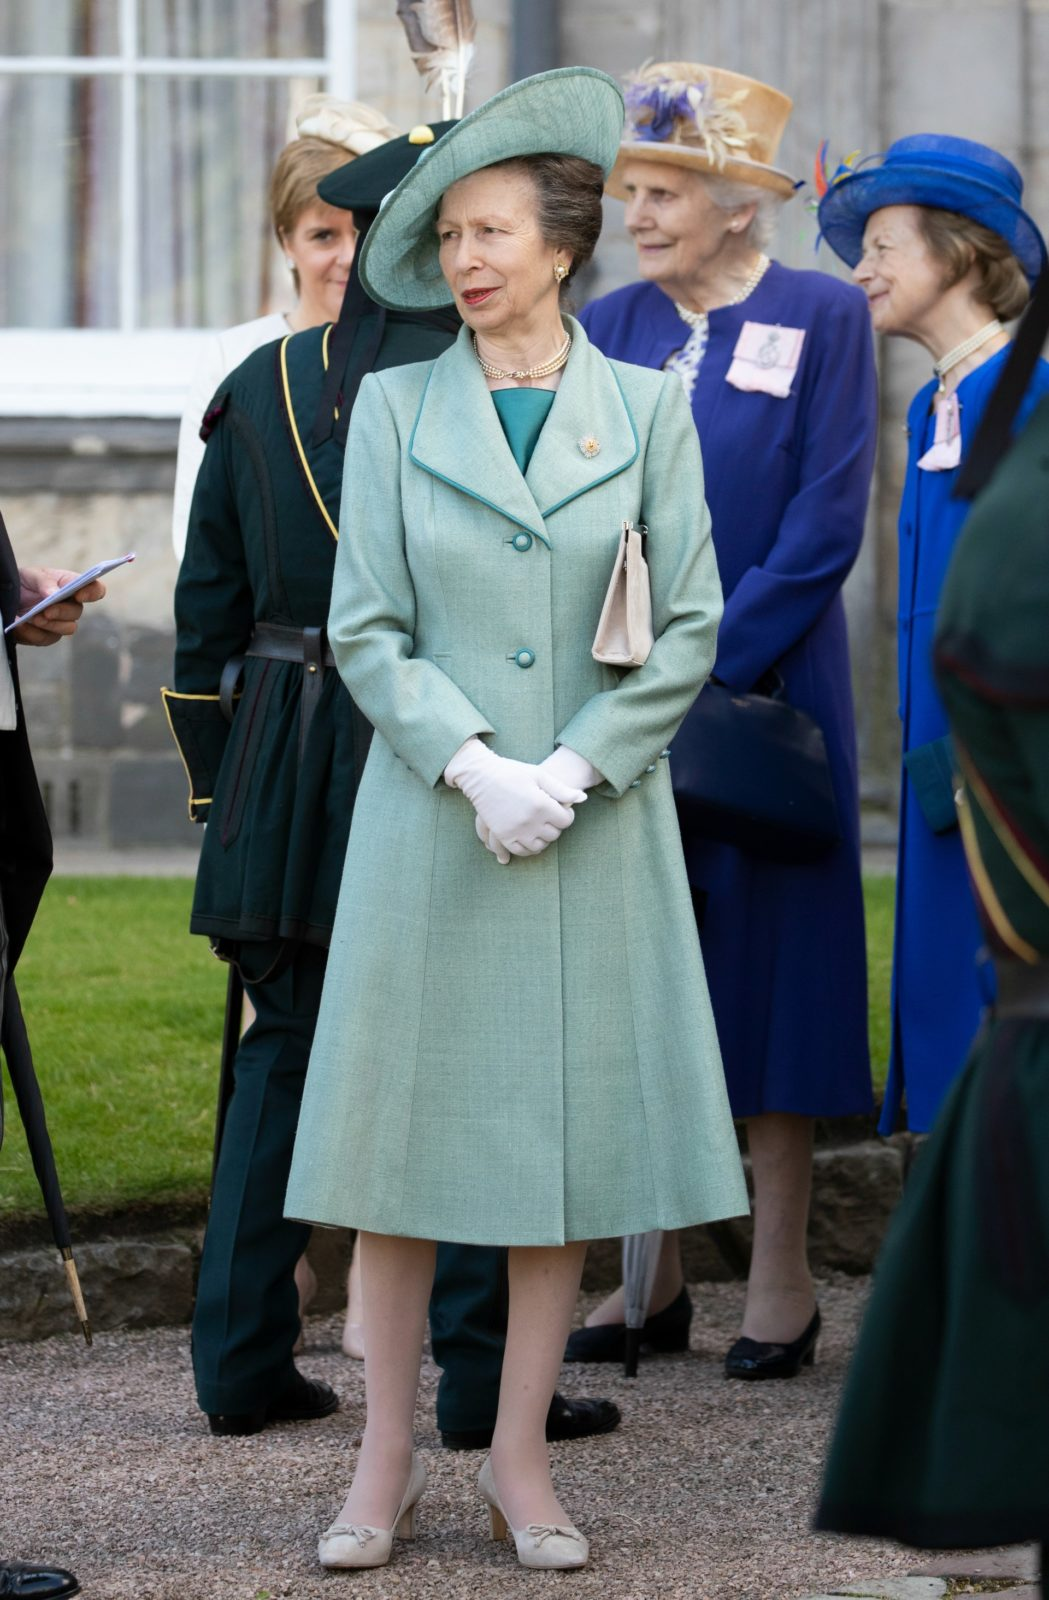 Princess Anne was a special guest at this year's garden party.